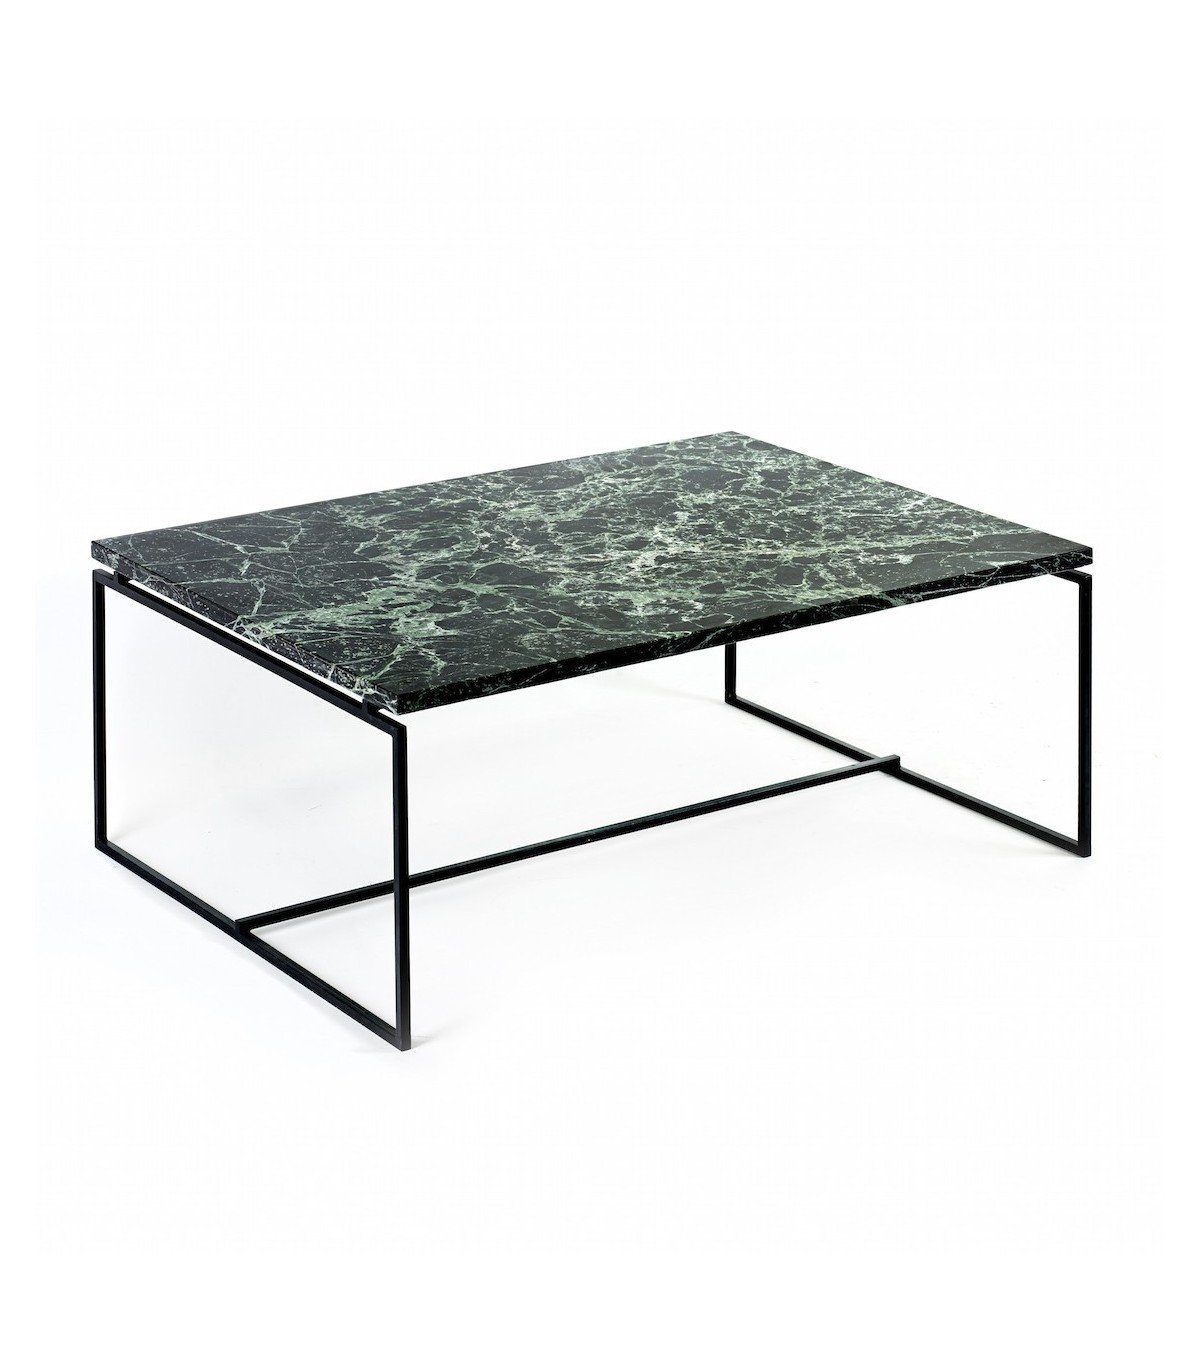 Table verde en marbre vert serax for Table basse scandinave vert d eau